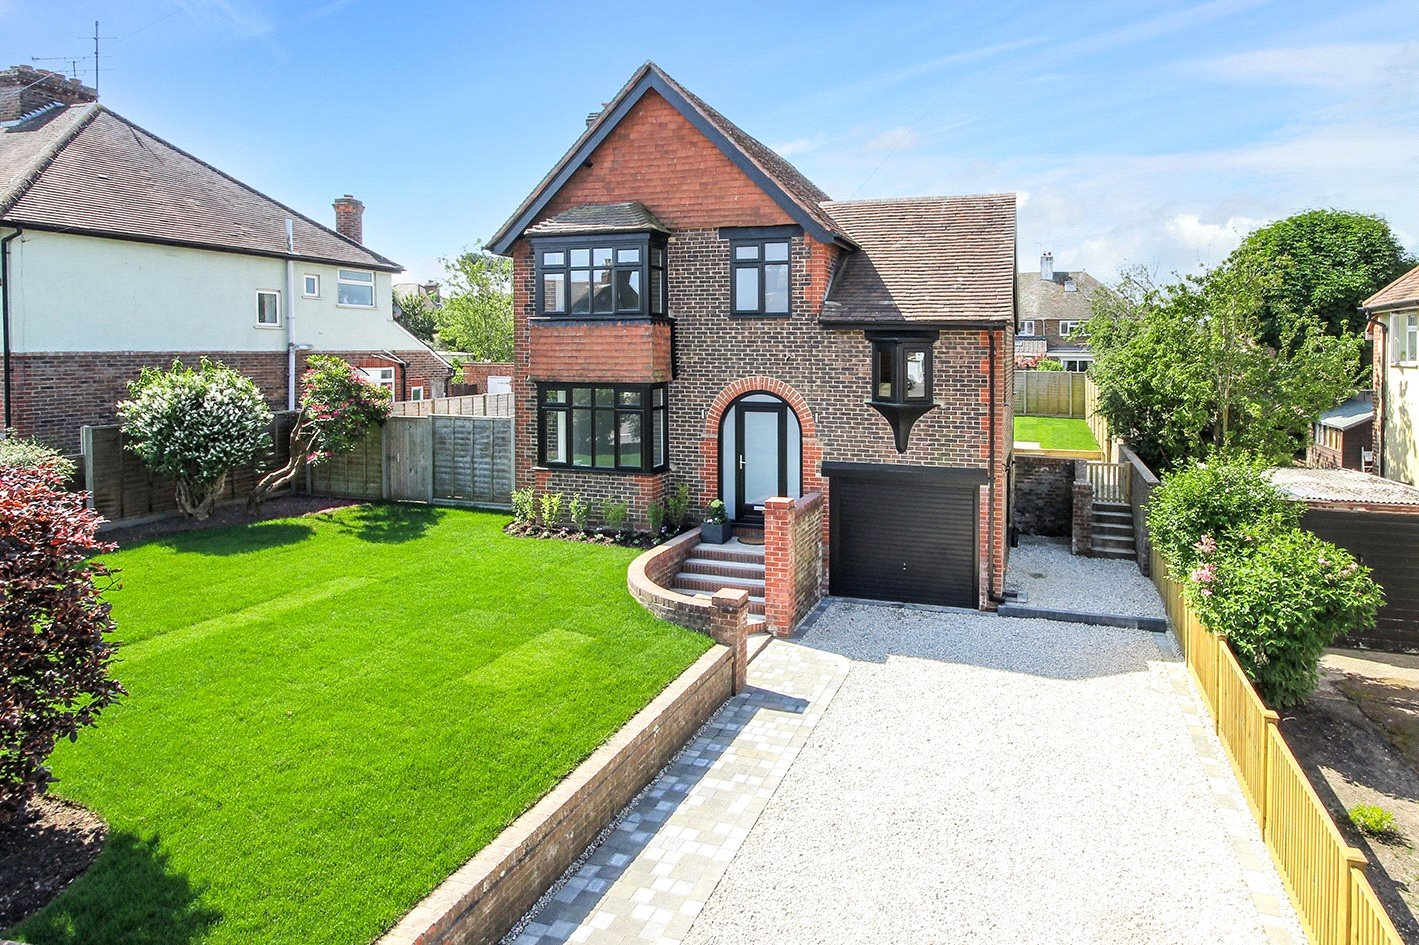 4 bed house for sale in Worthing Road, Rustington, BN16